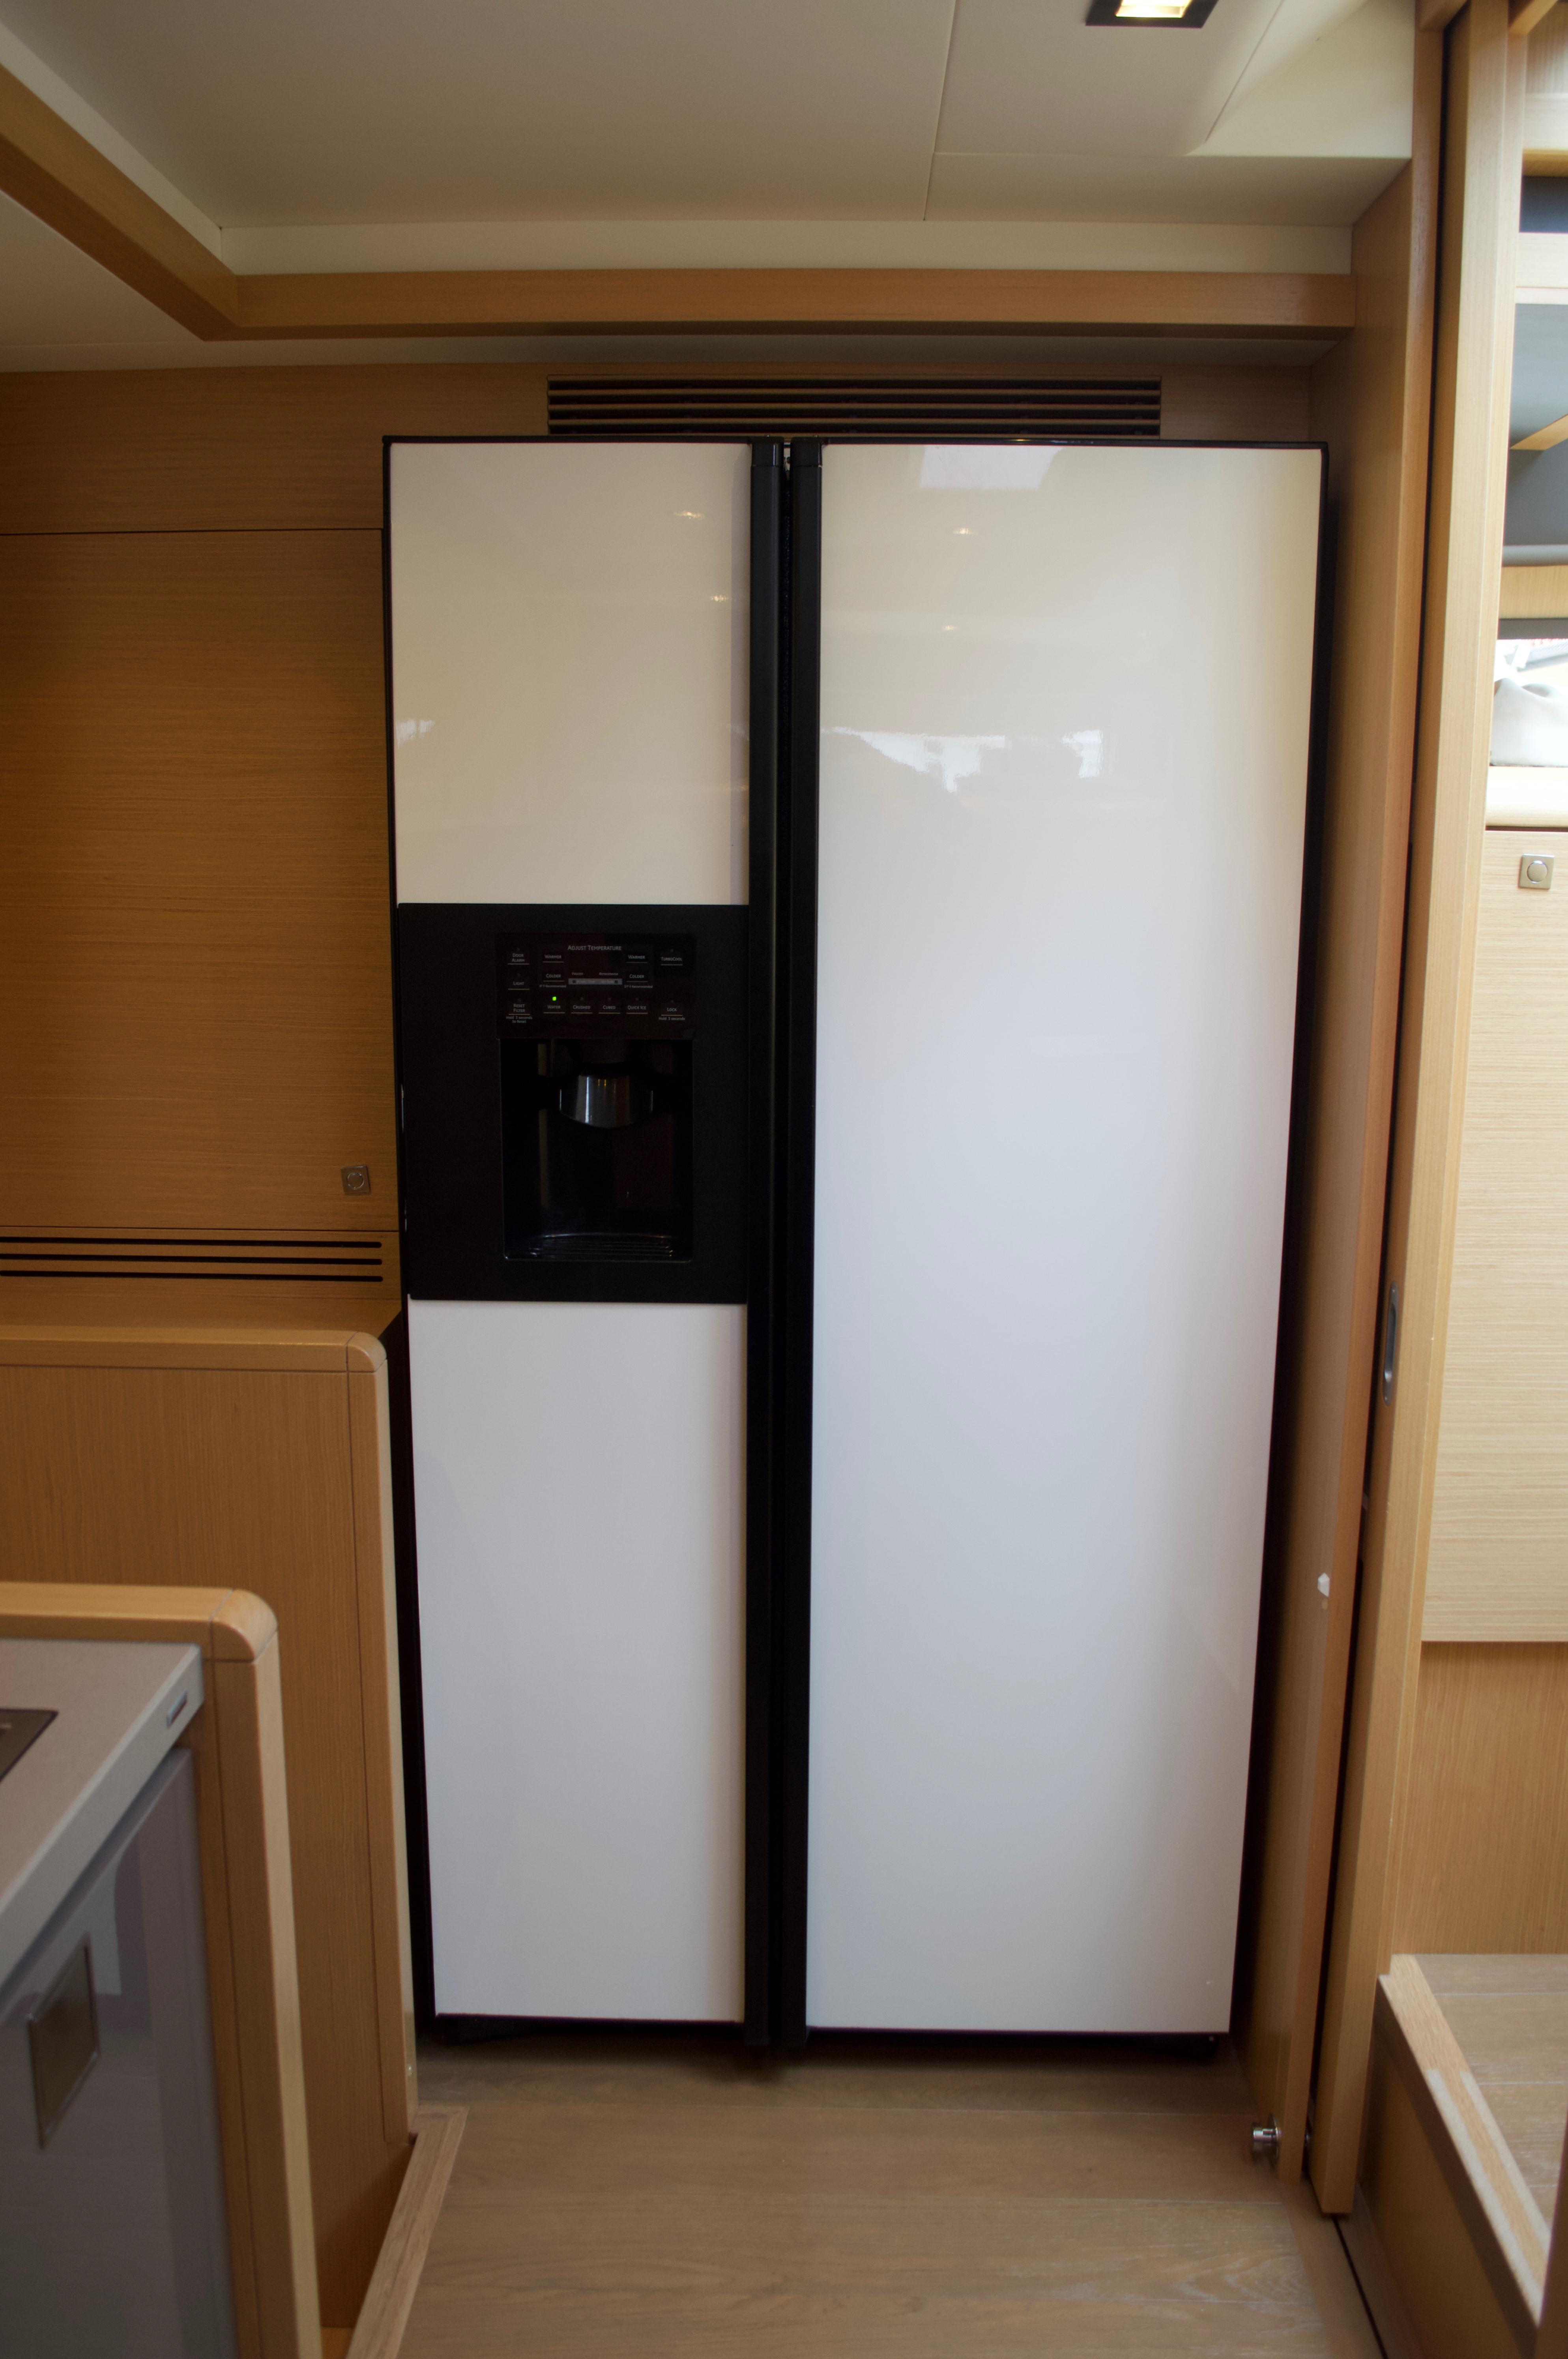 Full size GE fridge/freezer